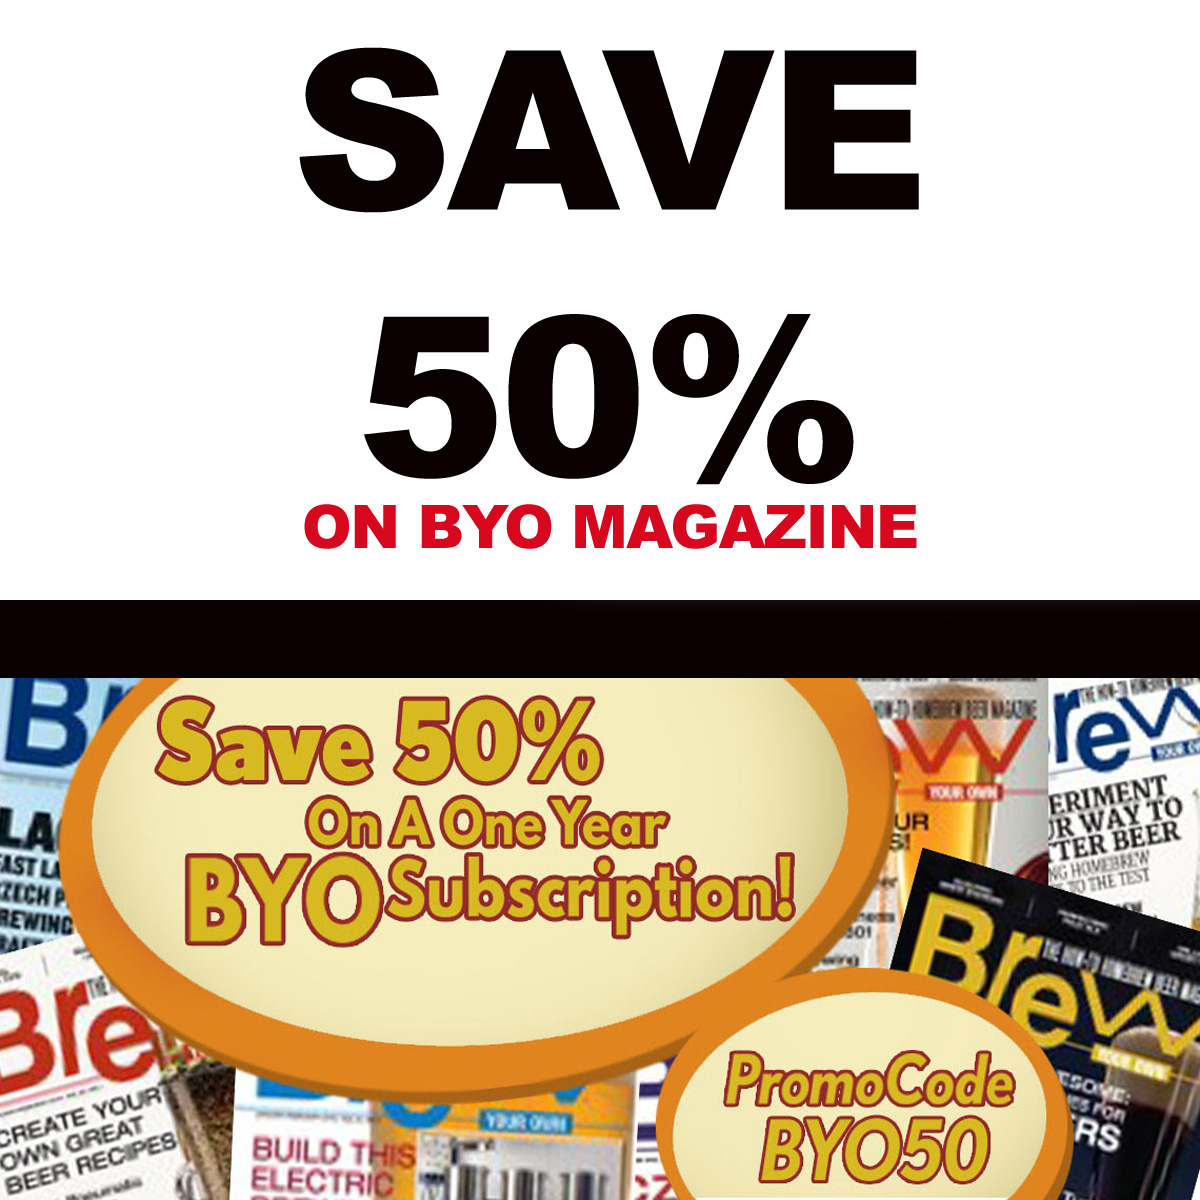 Save 50% On 1 Year Subscription To BYO Home Brewing Magazine at MoreBeer.com Coupon Code